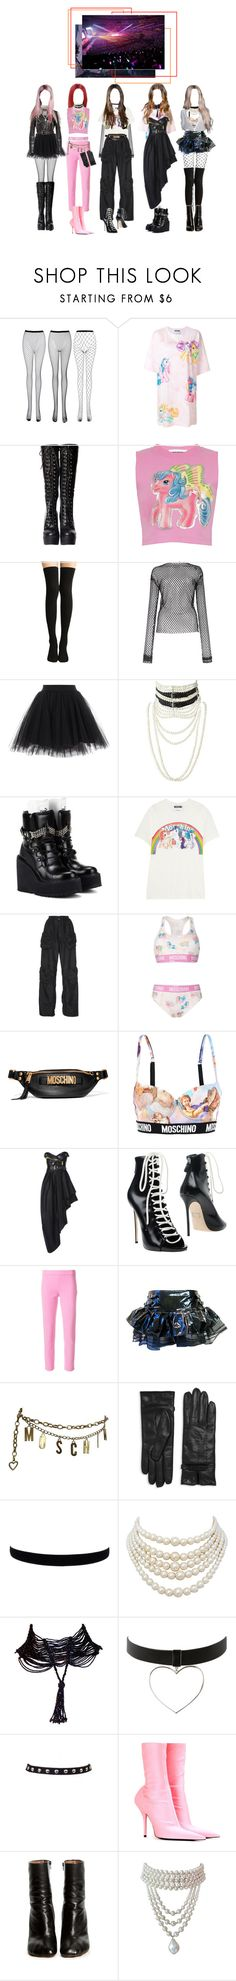 """""""Kpop Girl Group"""" by beyzalwaysperf ❤ liked on Polyvore featuring Moschino, Les Animaux, Christian Dior, Puma, J.W. Anderson, Dsquared2, Hell Bunny, Lamoda, Balenciaga and Vetements"""